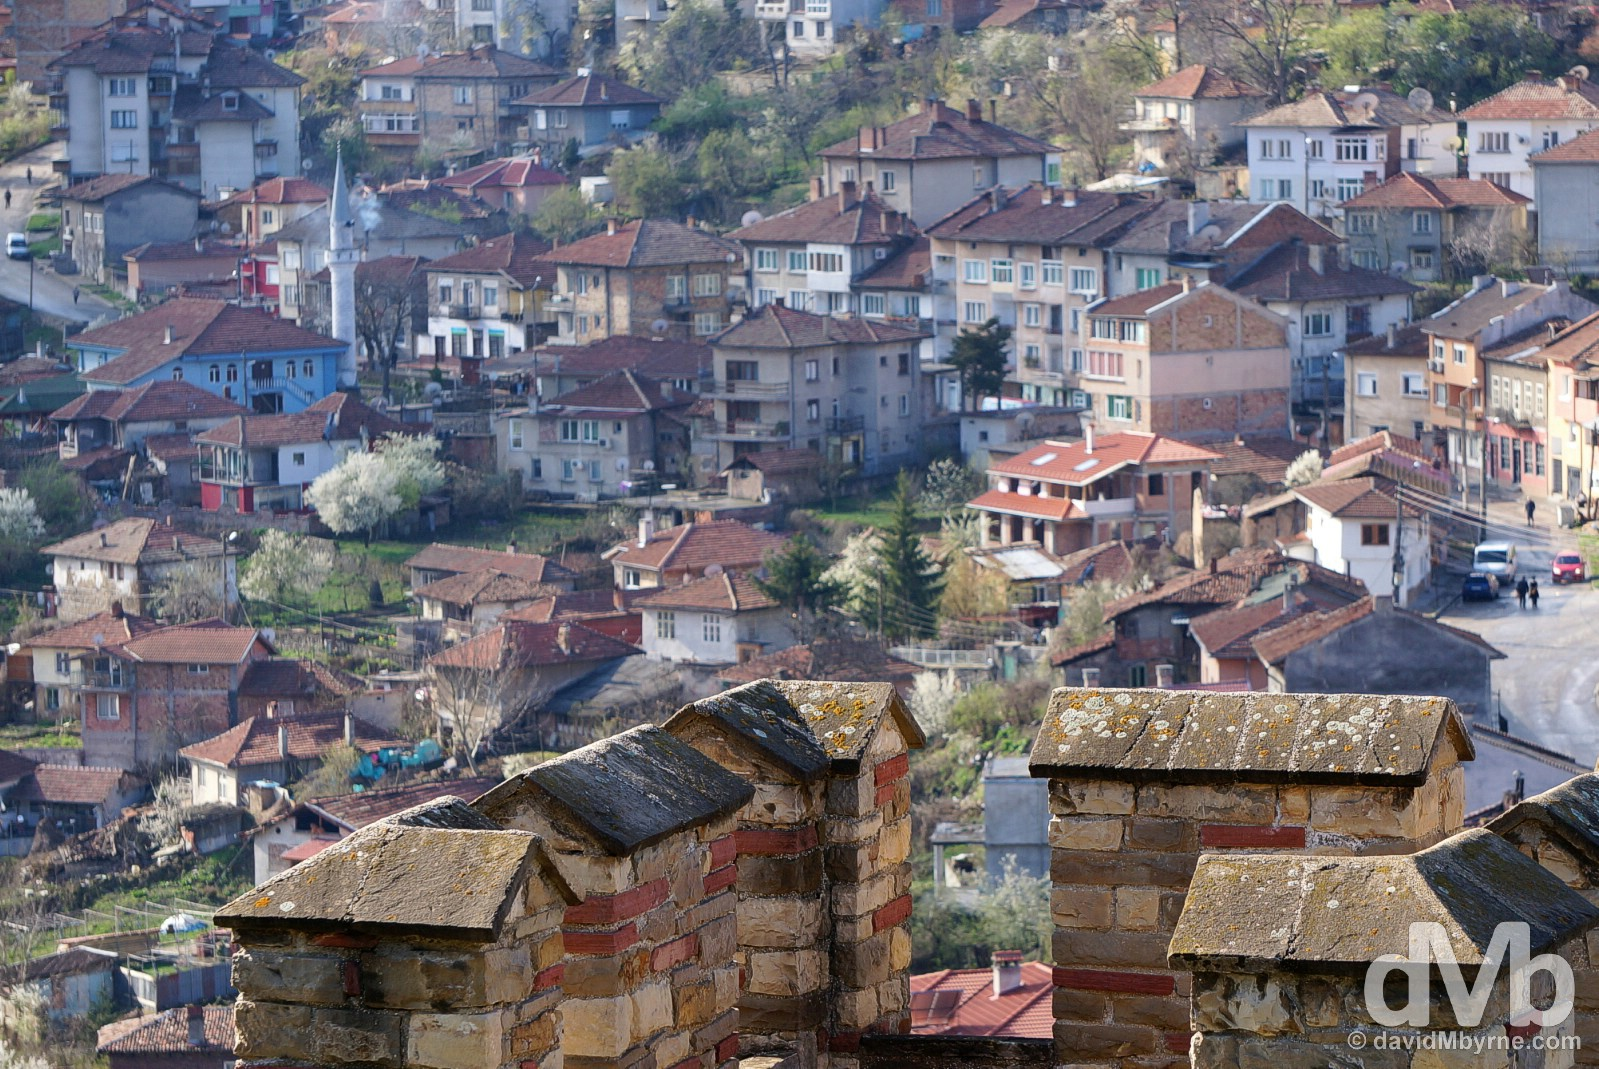 A portion of Veliko Tarnovo as seen from the walls of the Tsarevets Fortress. Veliko Tarnovo, Bulgaria. March 31, 2015.